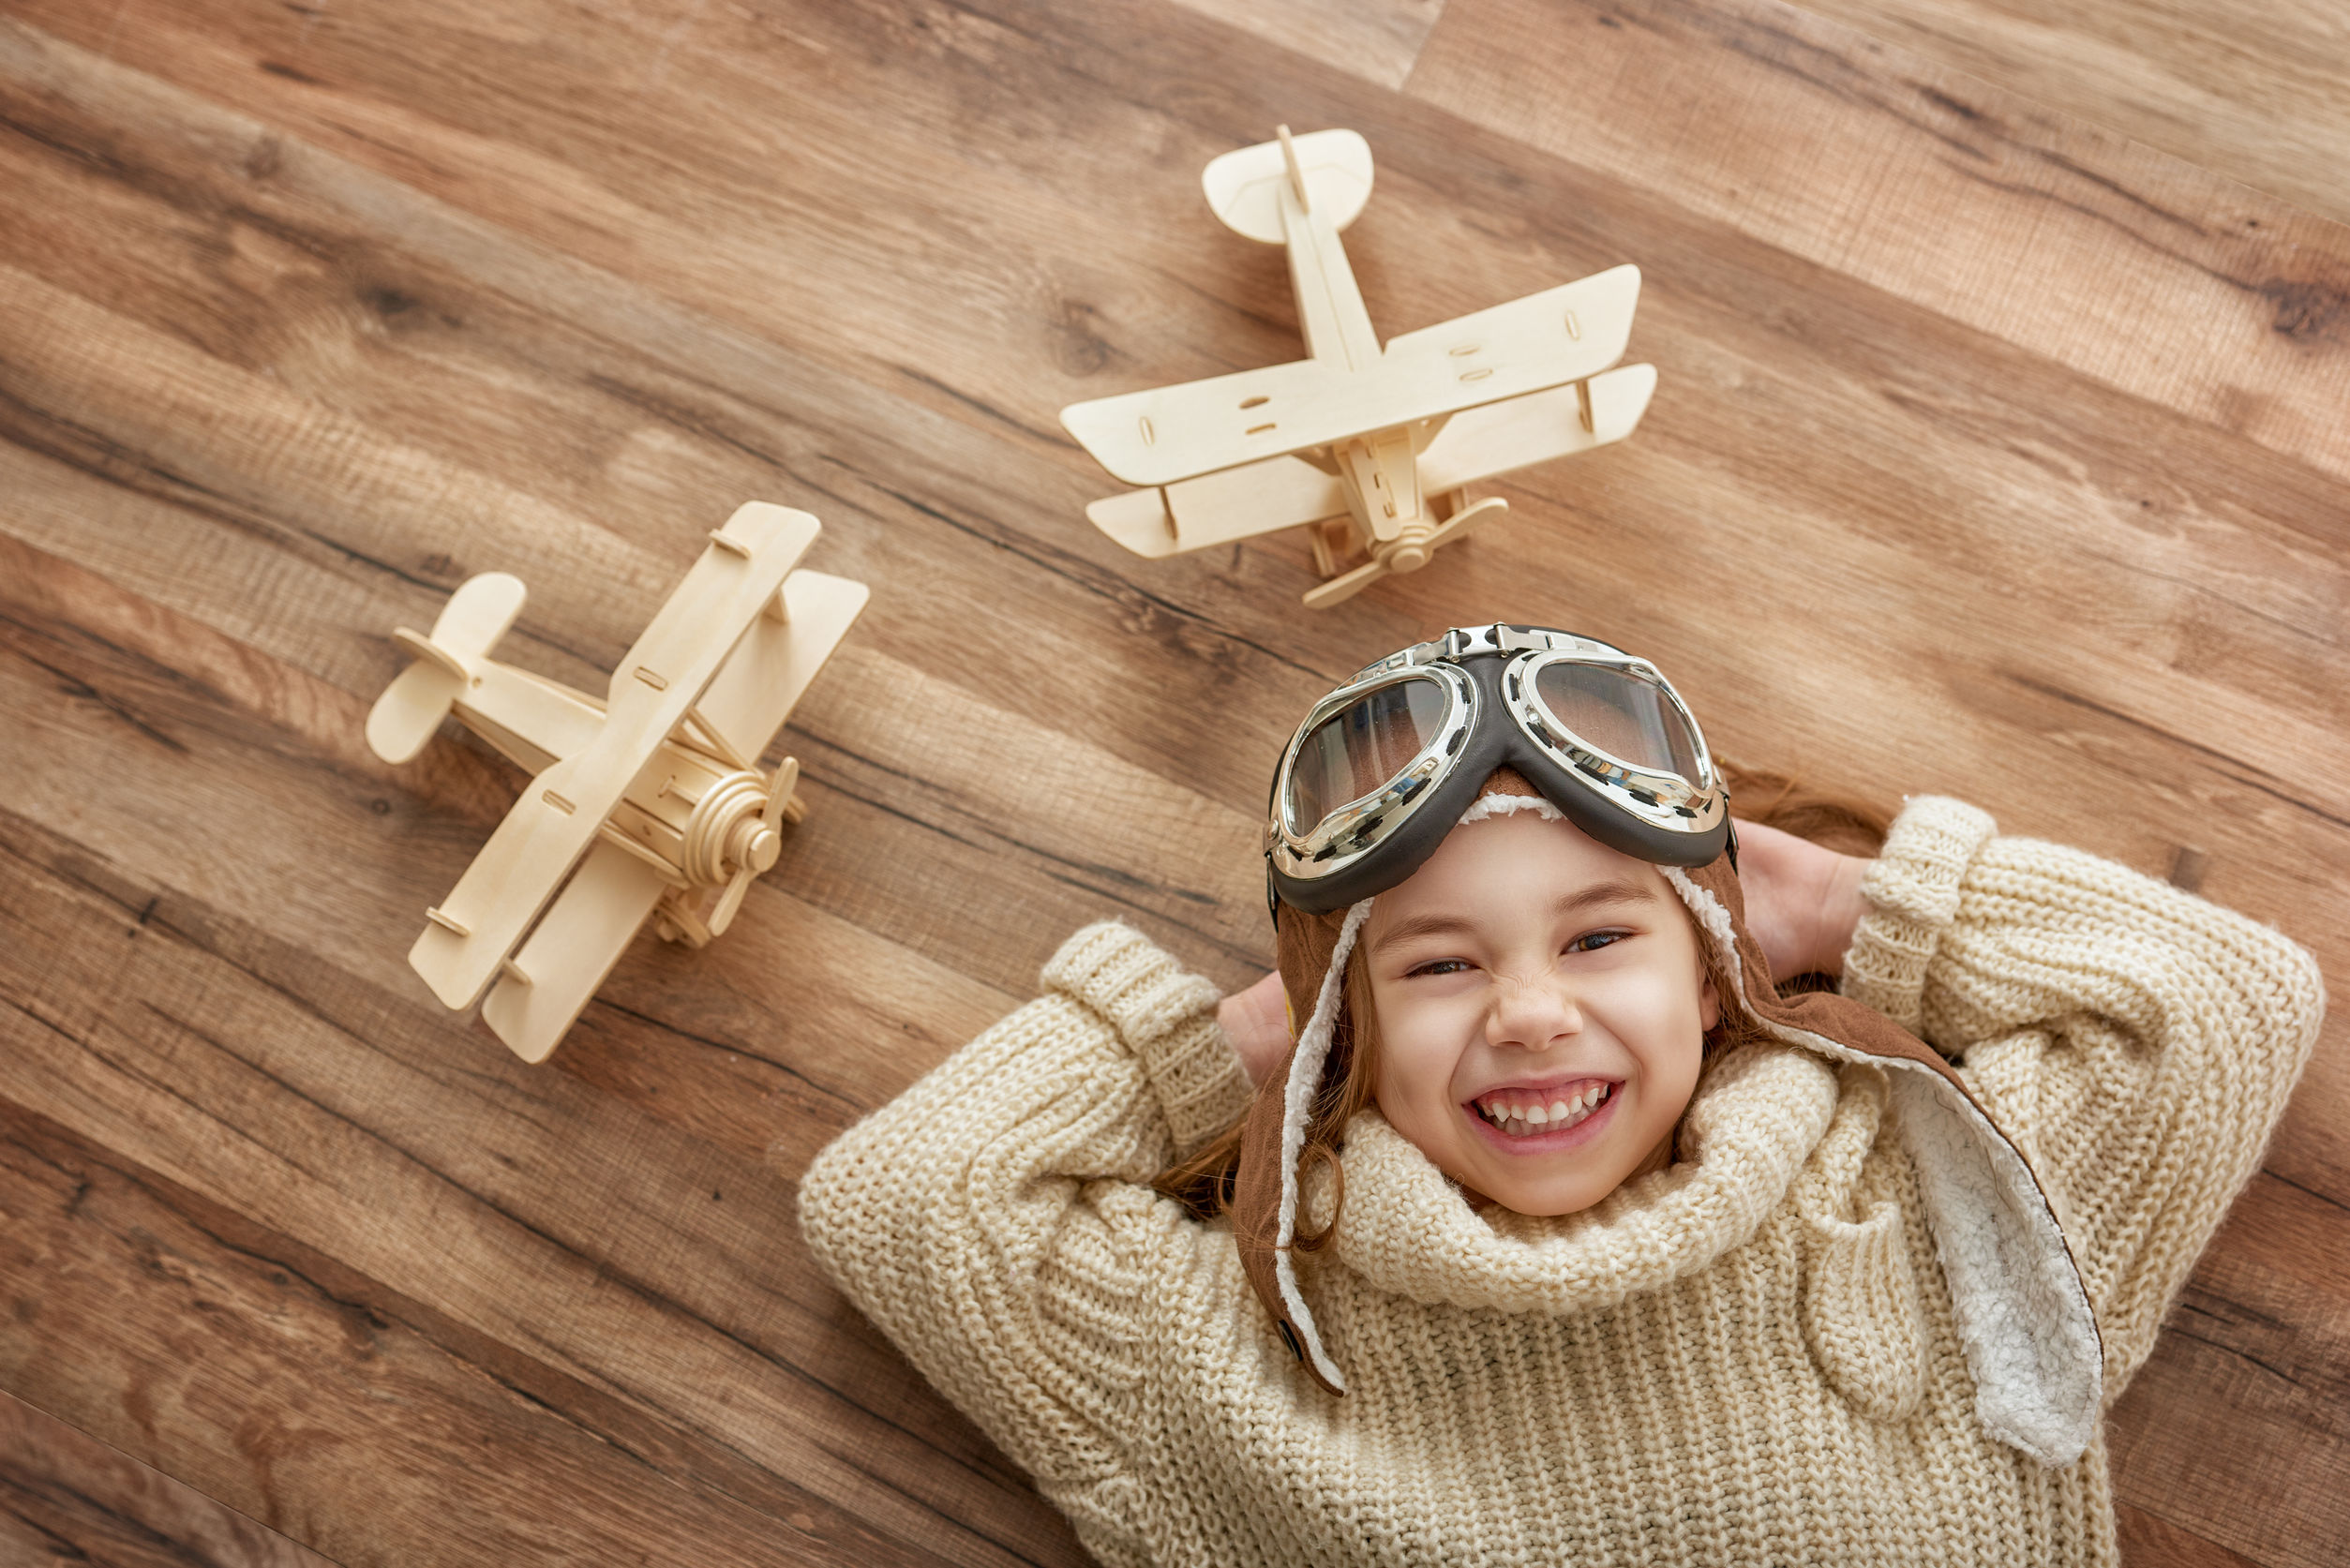 Best Wooden Toys 2020: The ultimate guide